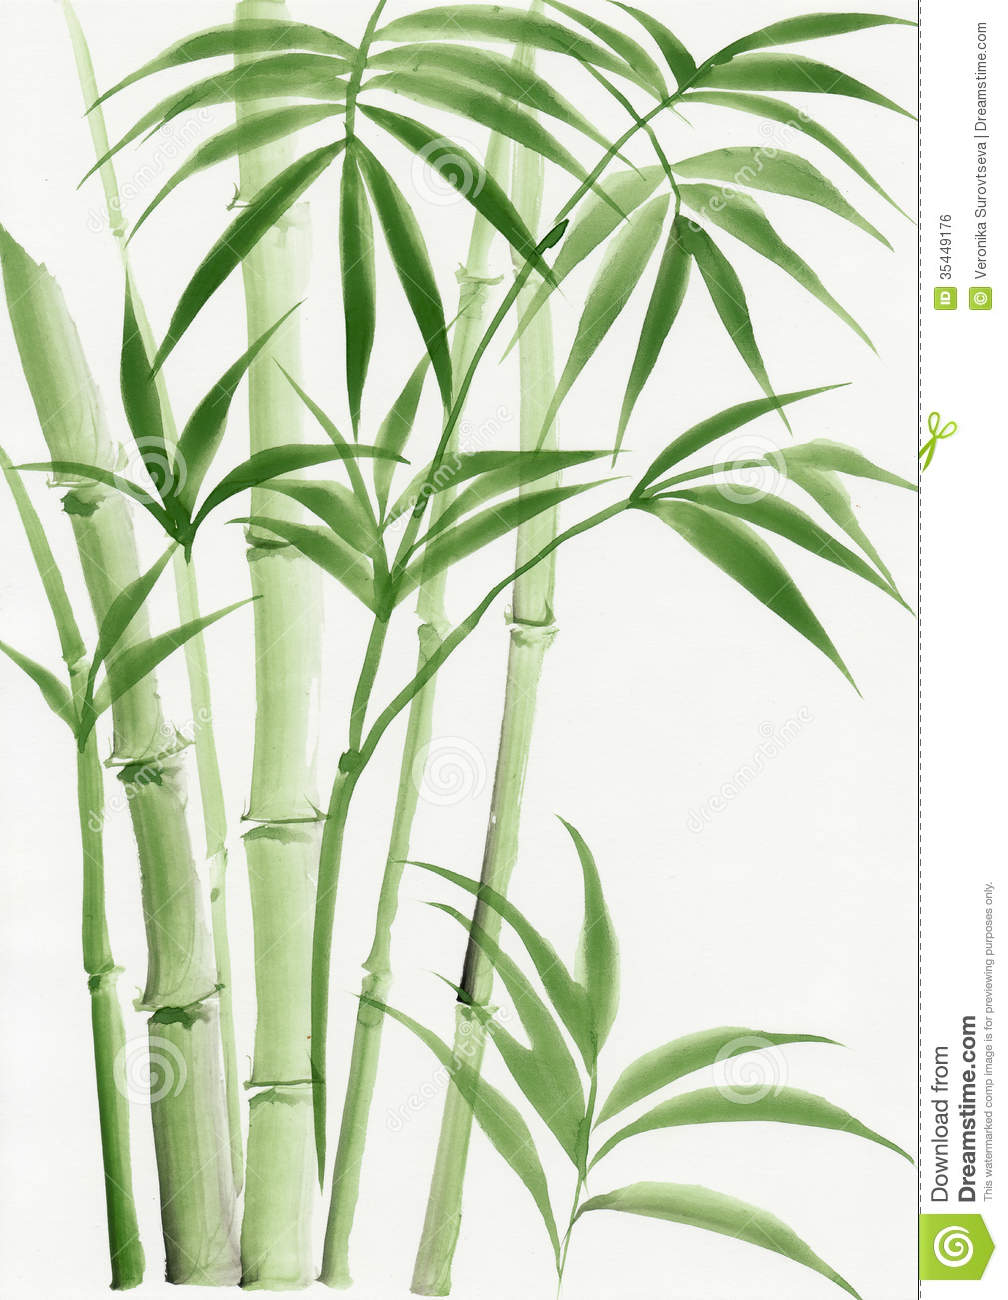 Watercolor Painting Of Palm Bamboo Stock Photo Image Of Leaves Original 35449176